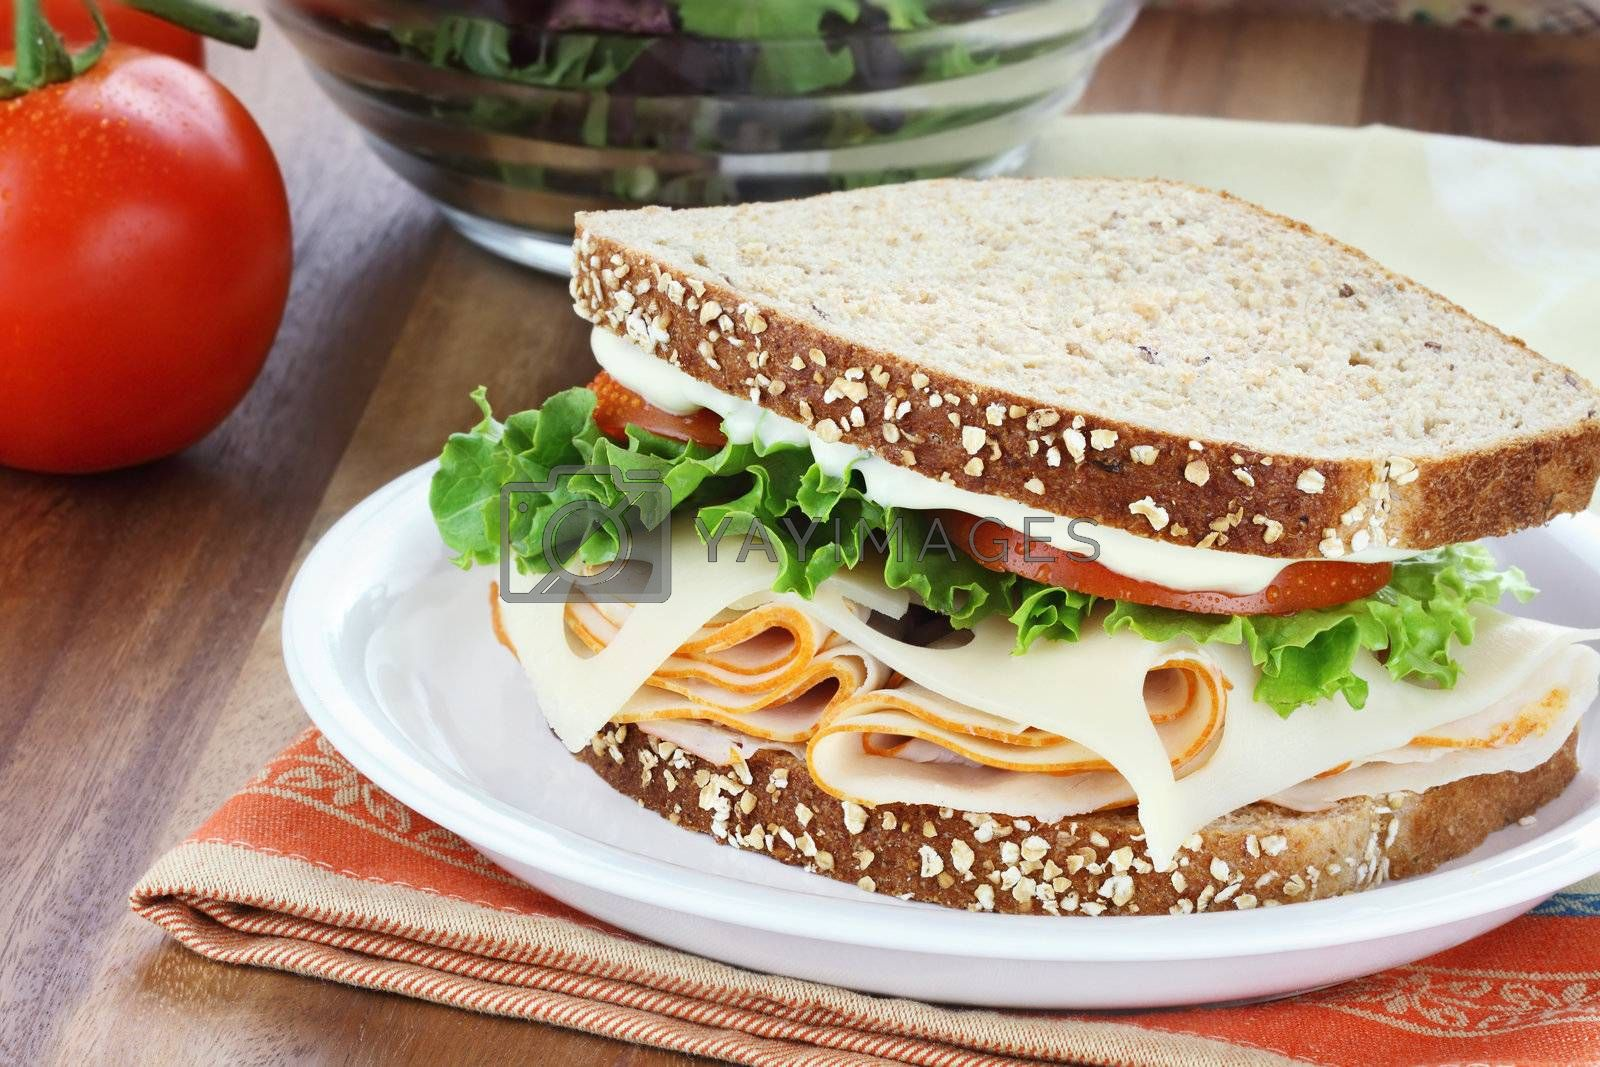 Smoked chicken sandwich with lettuce, tomato and swiss cheese and whole grain bread.